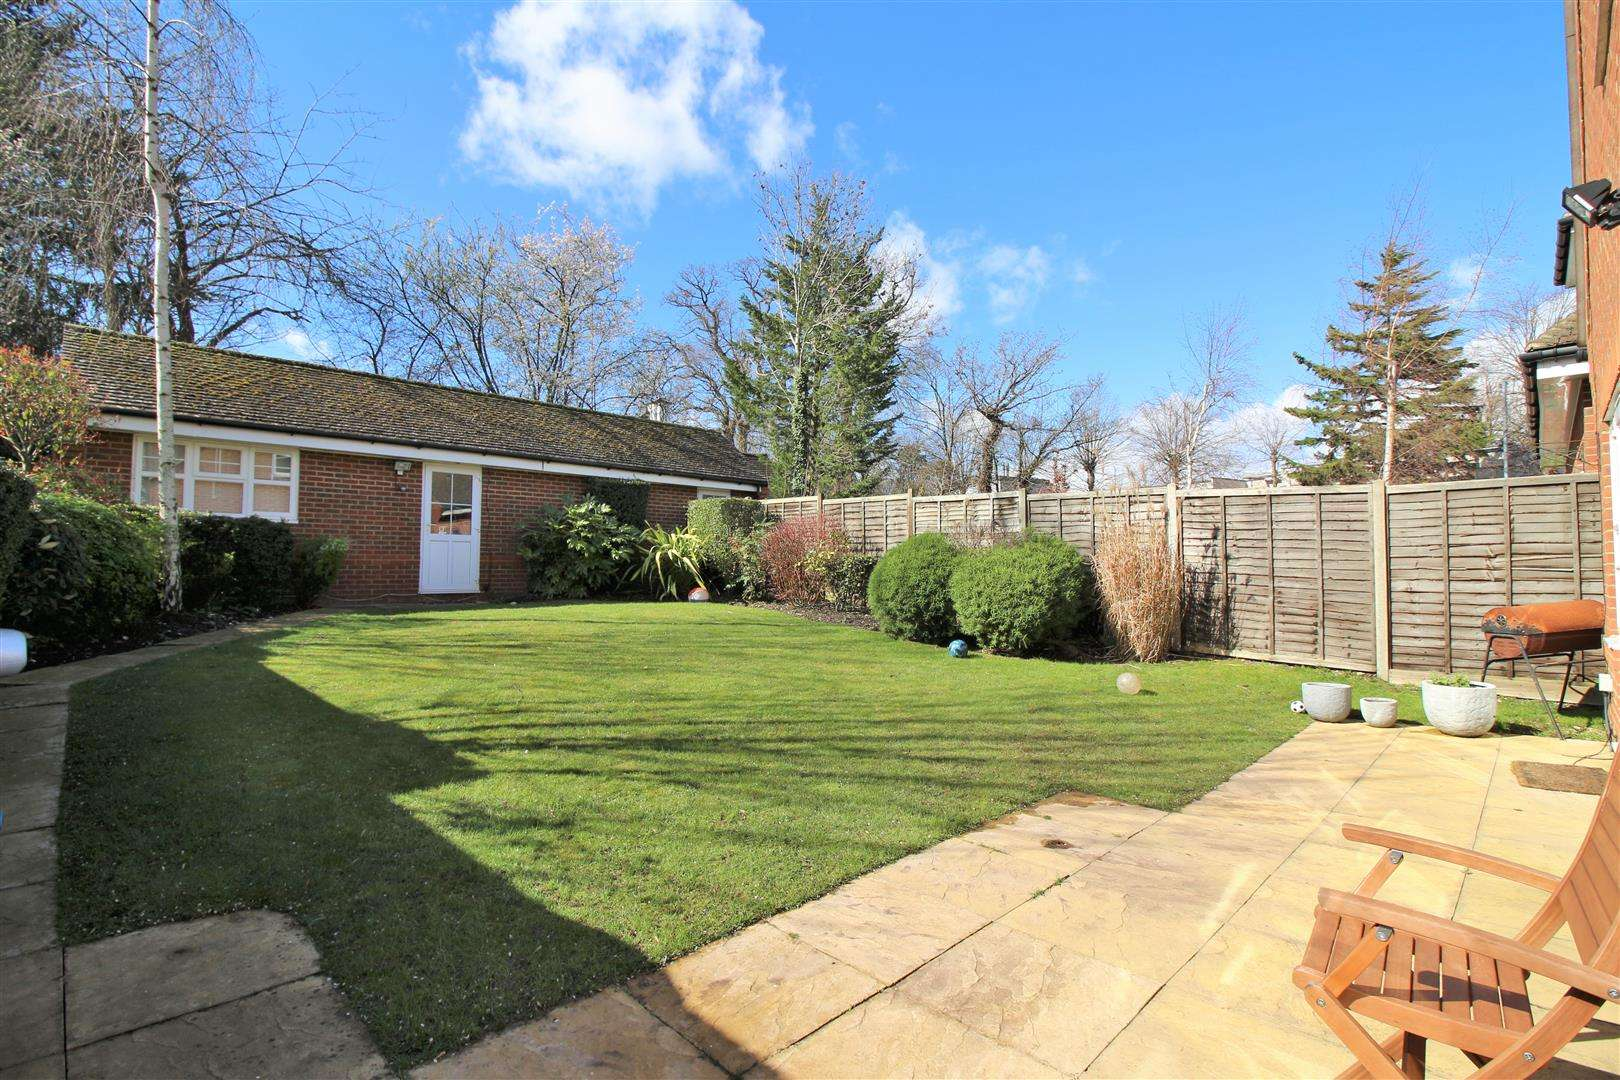 4 bed to rent in Bushey Heath - (Property Image 16)